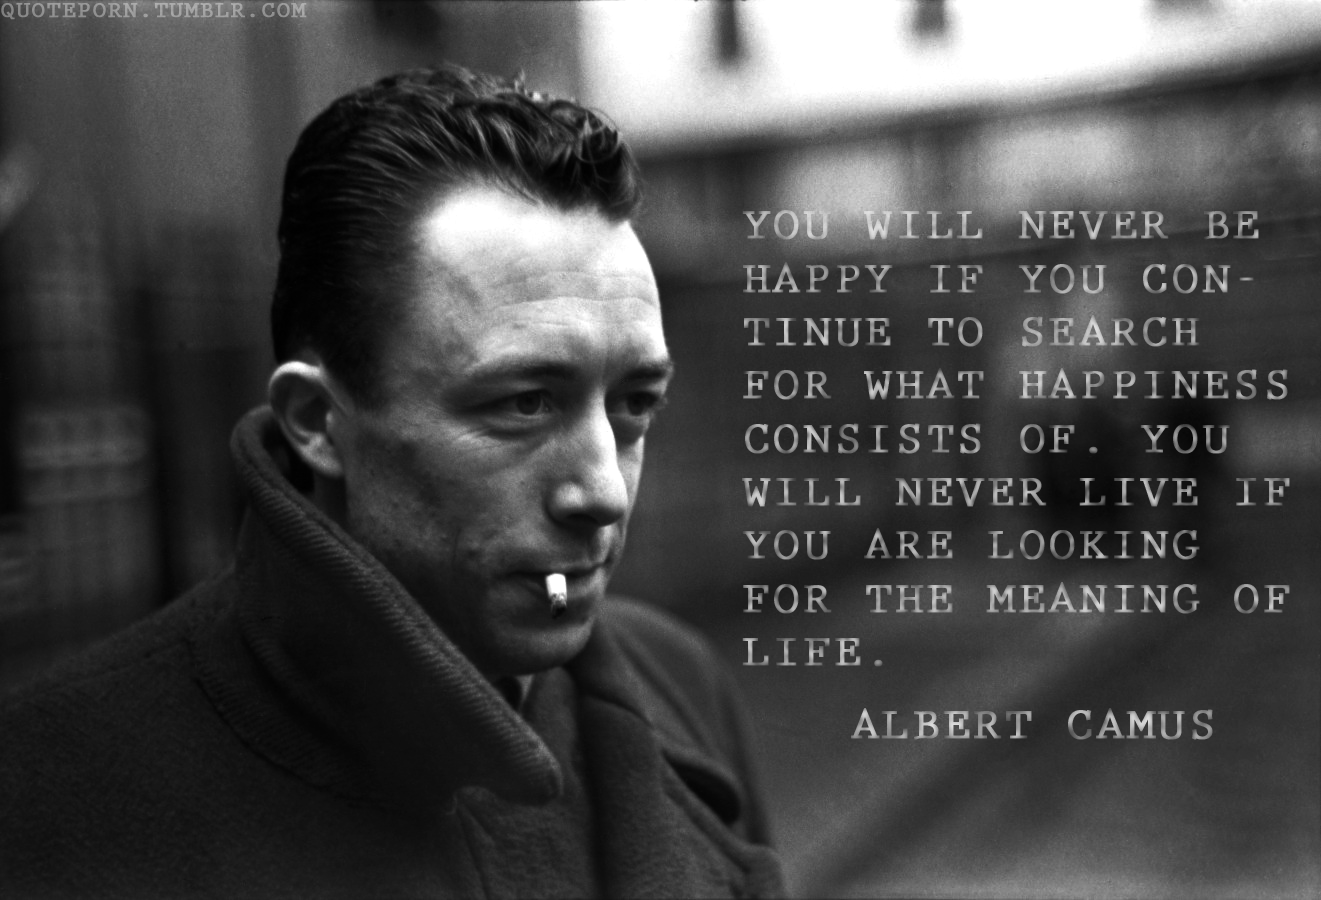 Philosophers Quotes On The Meaning Of Life Philosophy Talk Asks Is Life As Absurd As Albert Camus Thought